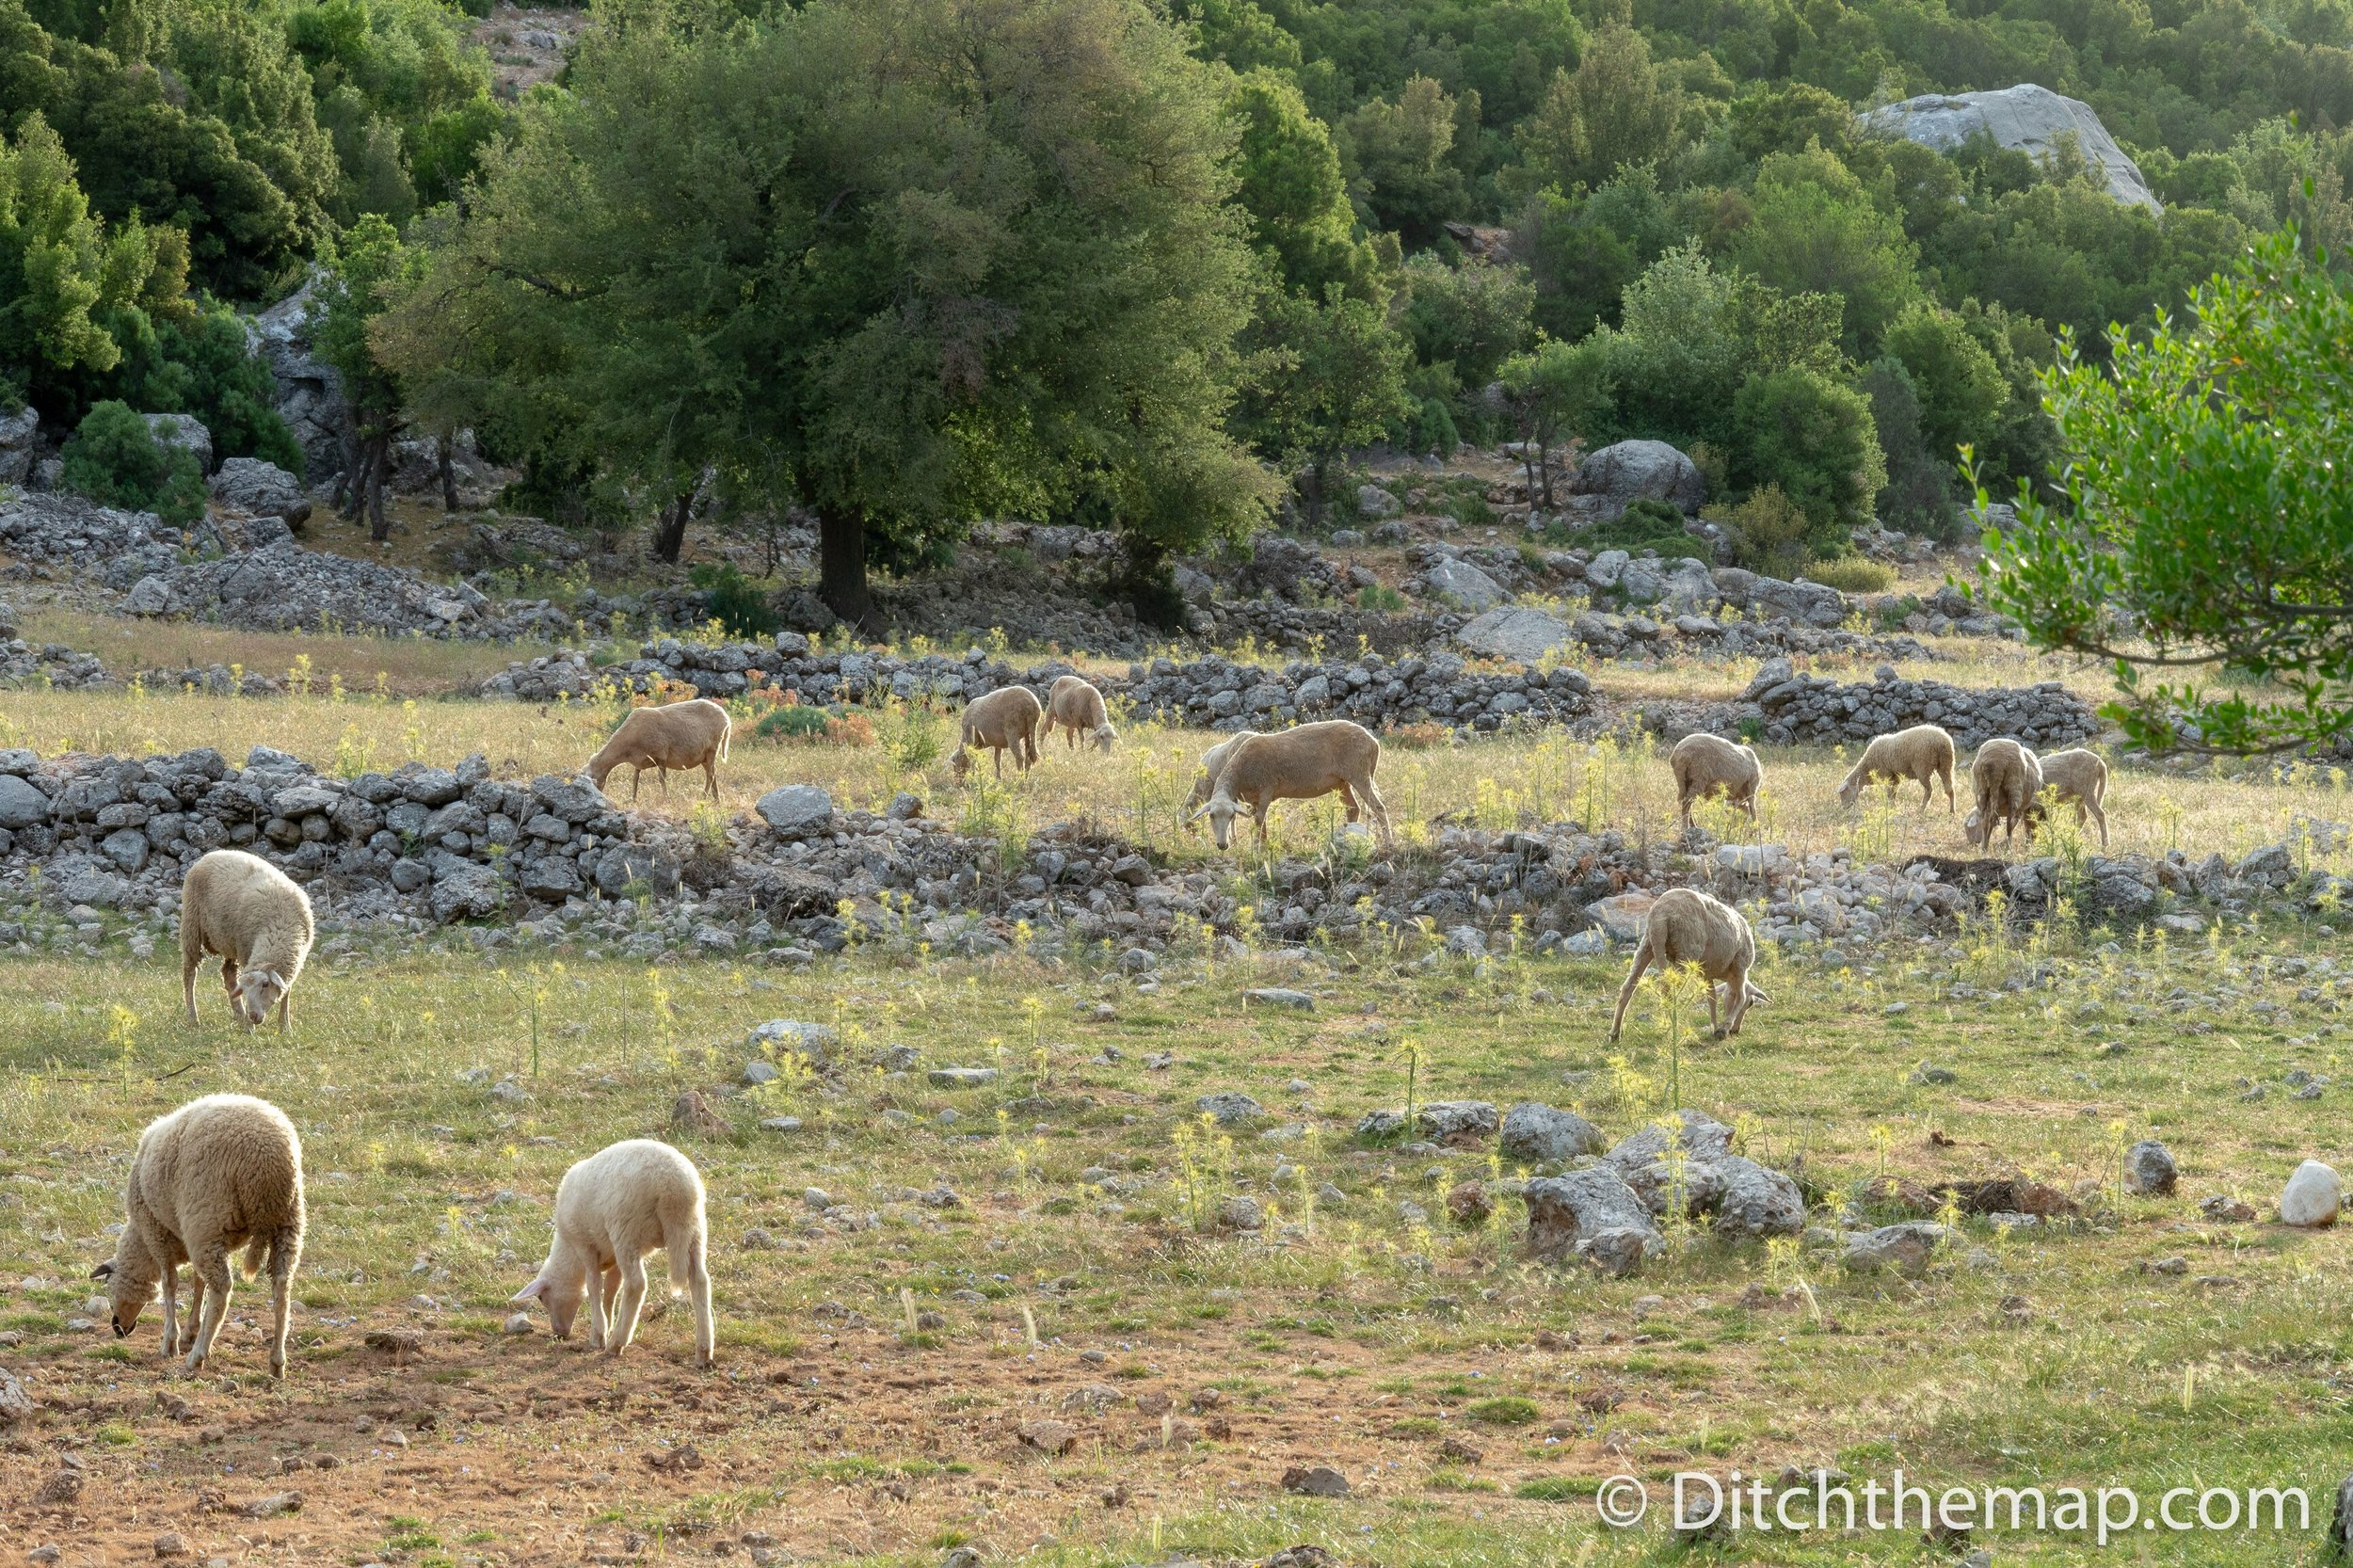 Sheep graze next to our campsite on the Lycian Way